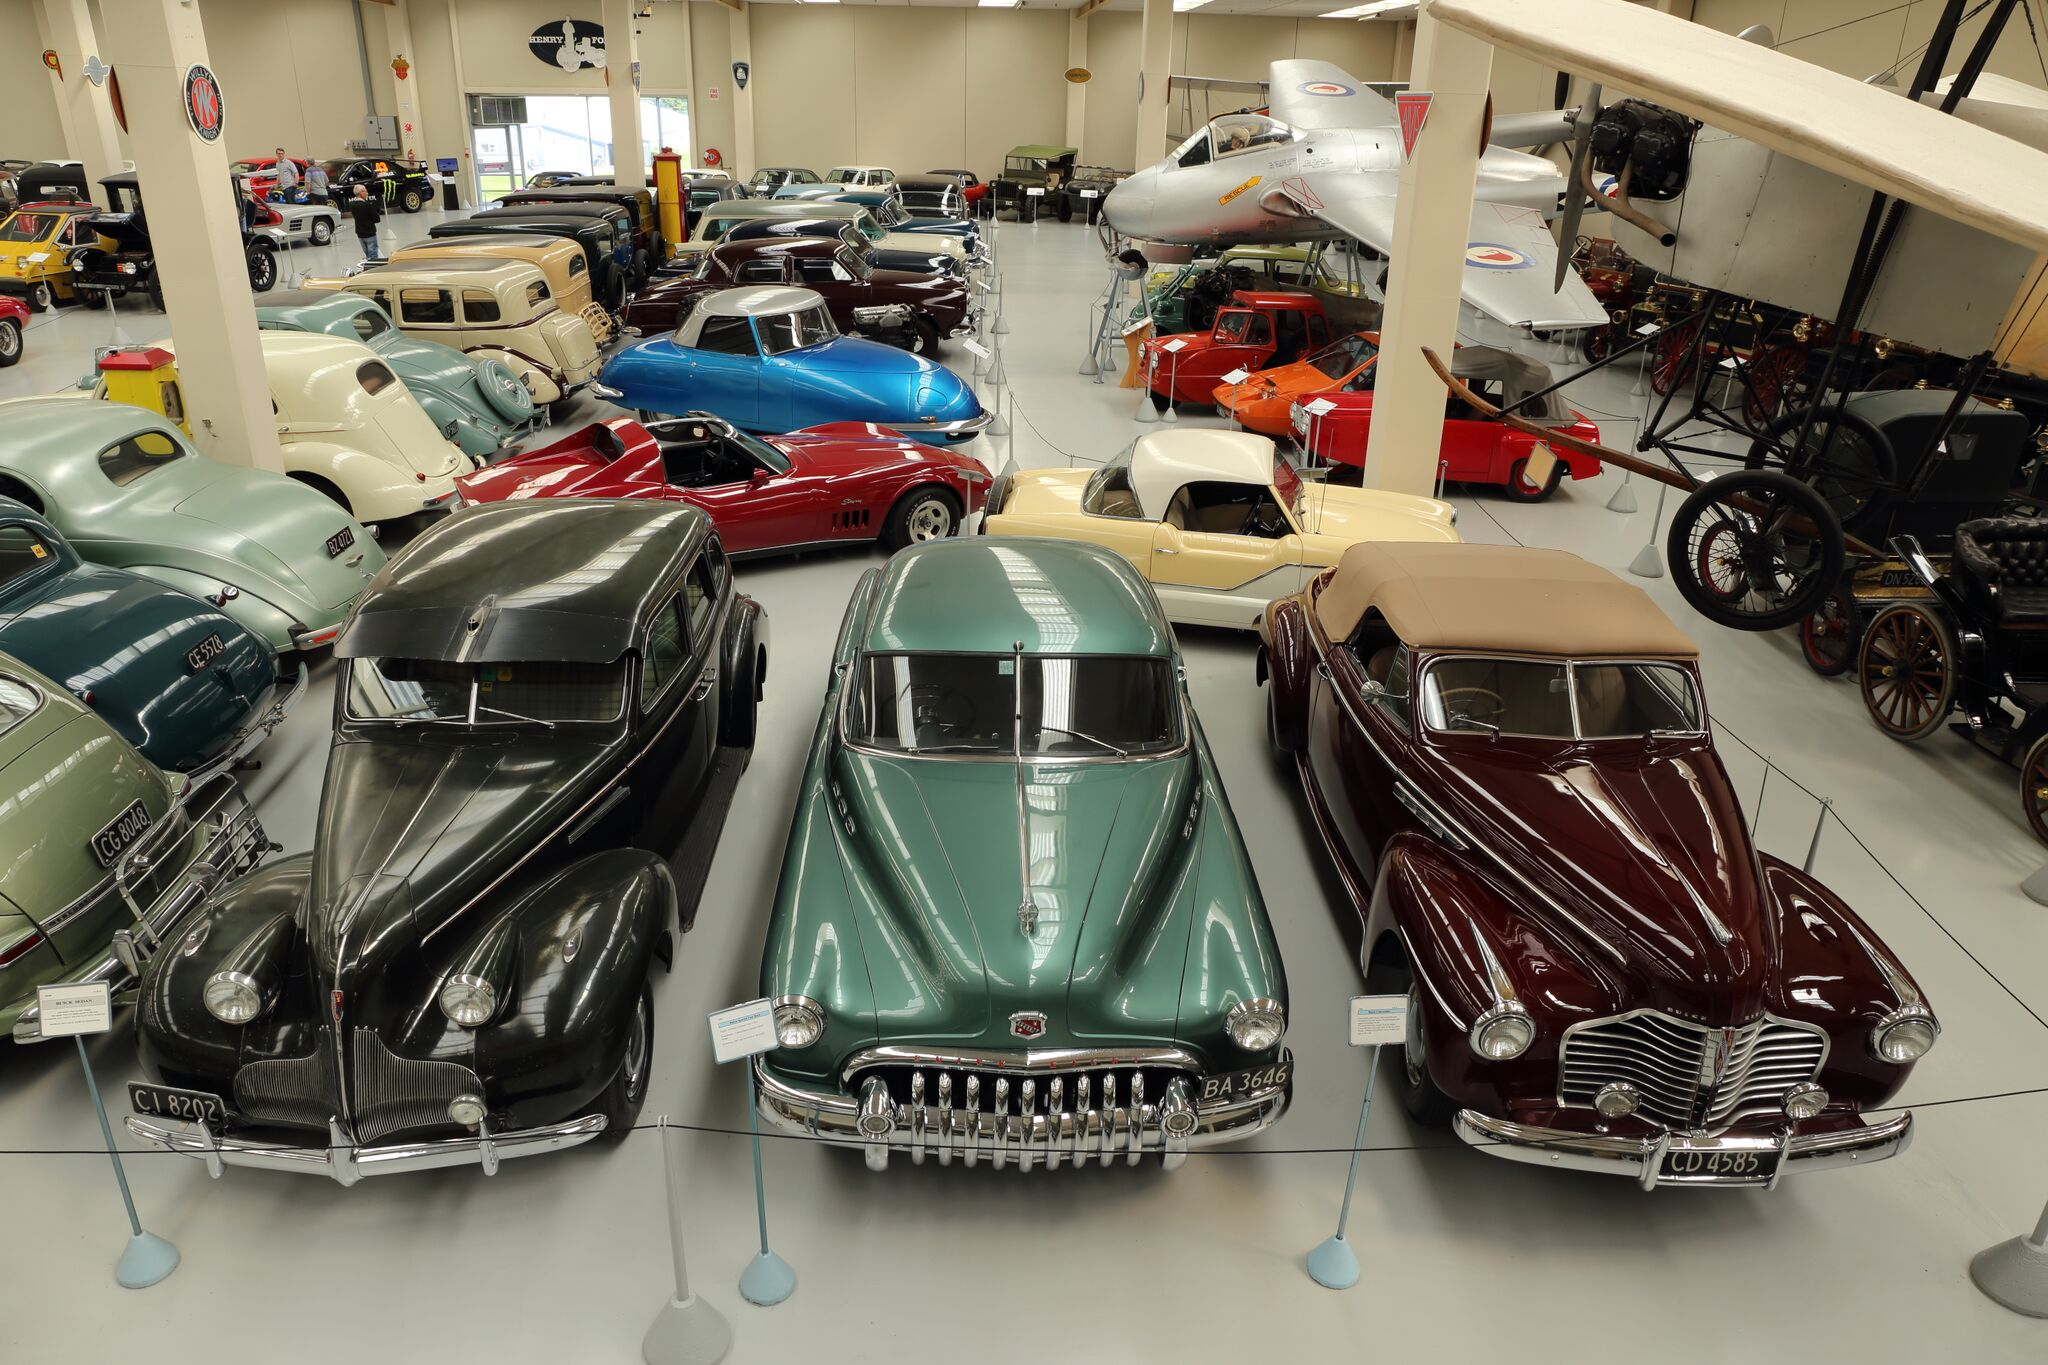 Southwards Car Museum - Otaihanga